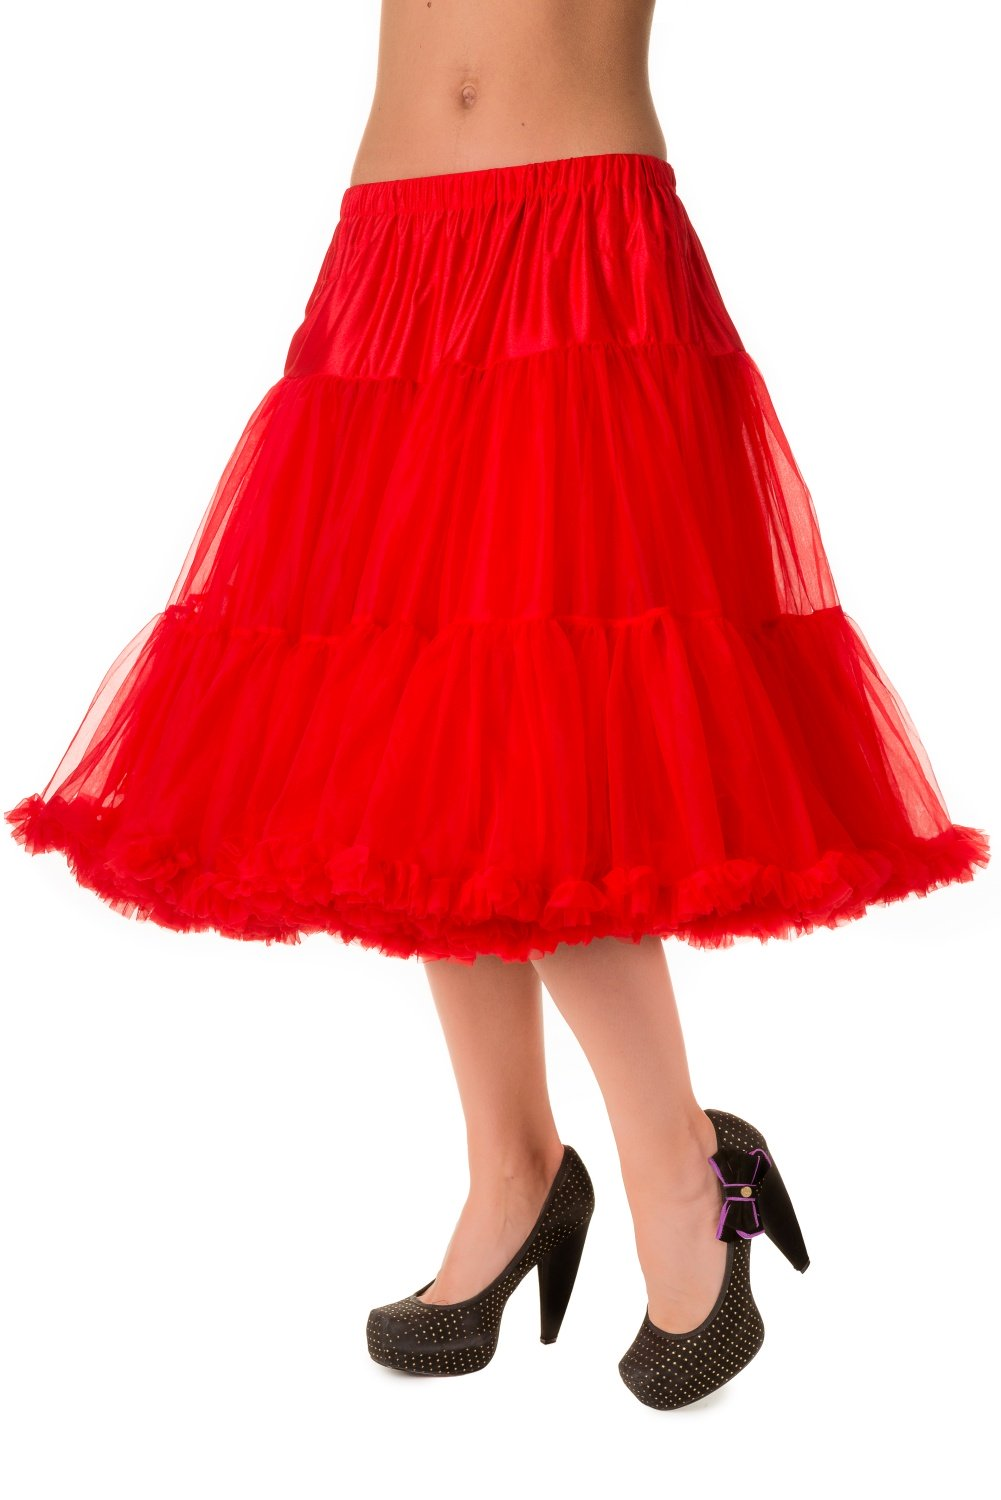 Banned Retro 50s Lizzy Lifeforms Red Petticoat